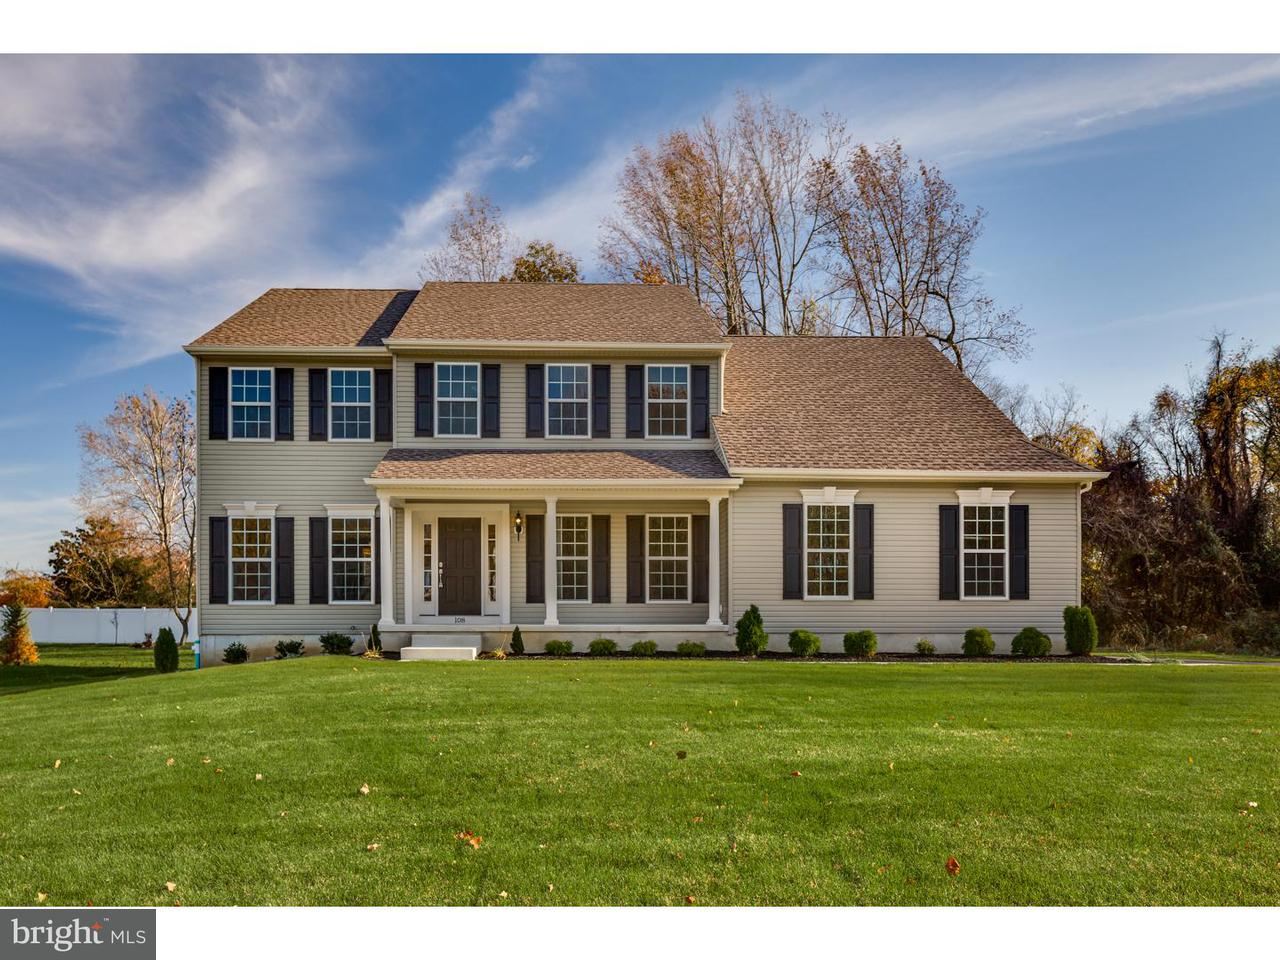 Single Family Home for Sale at 108 ROBERT BOTTO WAY Clarksboro, New Jersey 08020 United States